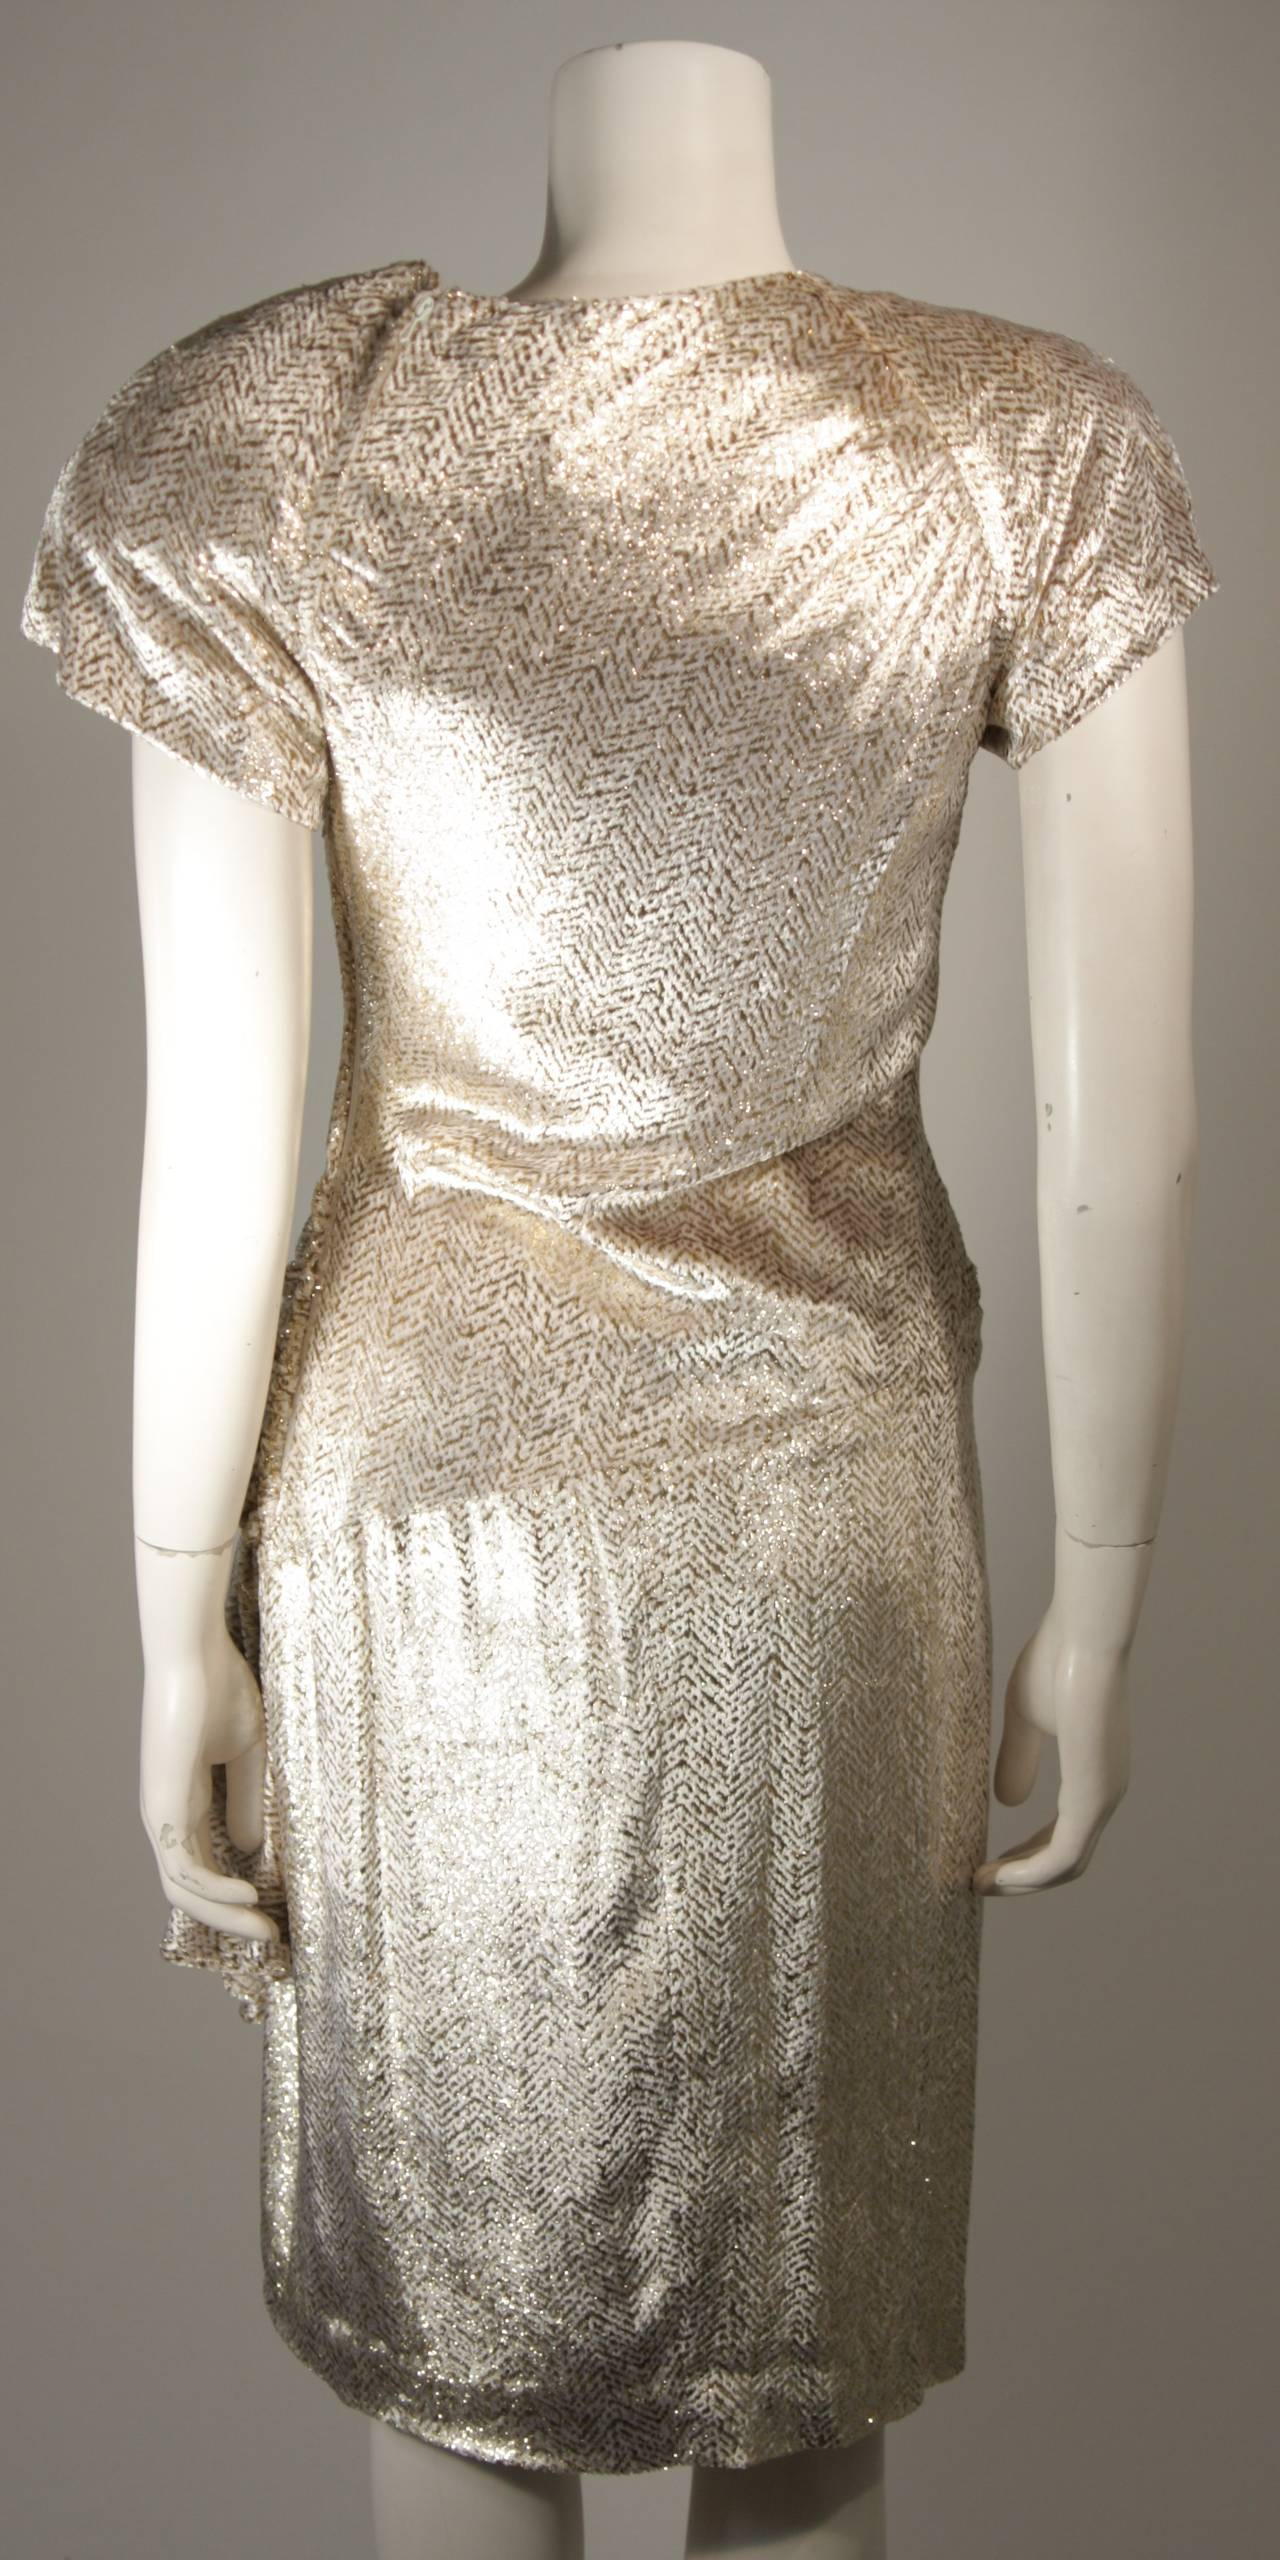 Vicky Tiel Ivory and Gold Velvet Texture Cocktail Dress Size 38 9